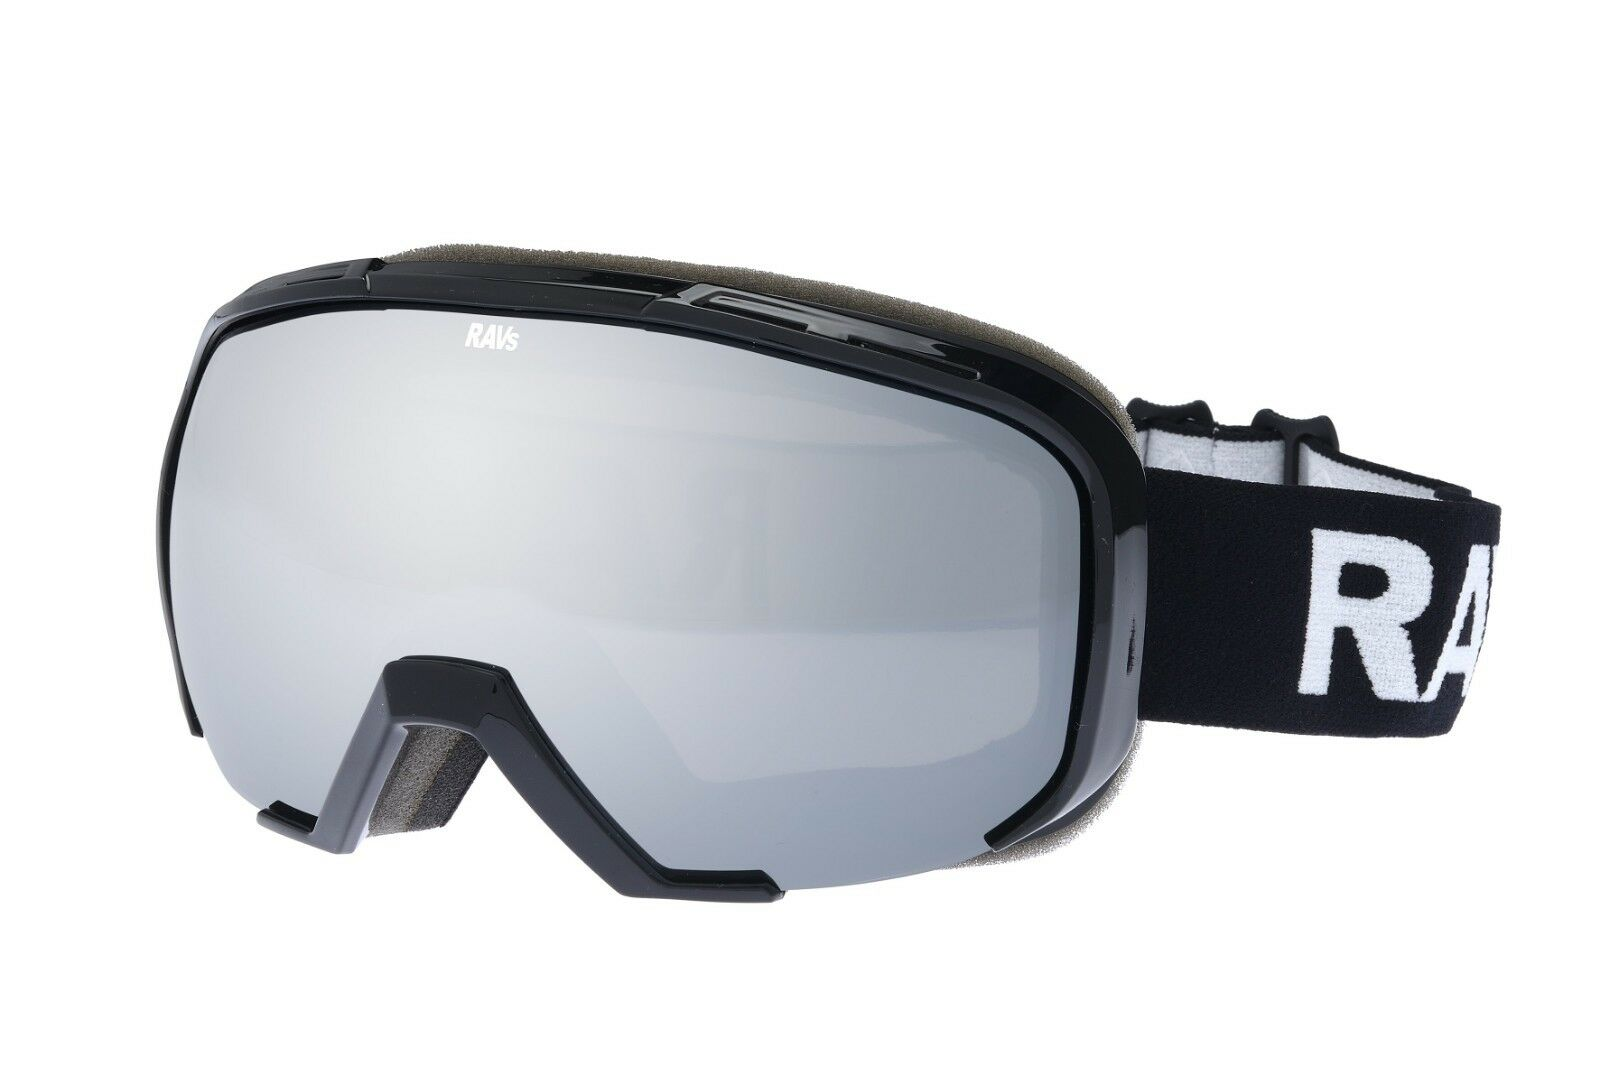 Ravs Spectacle Wearers Snowboard Goggles Ski Helmet-Compatible Extra Contrast